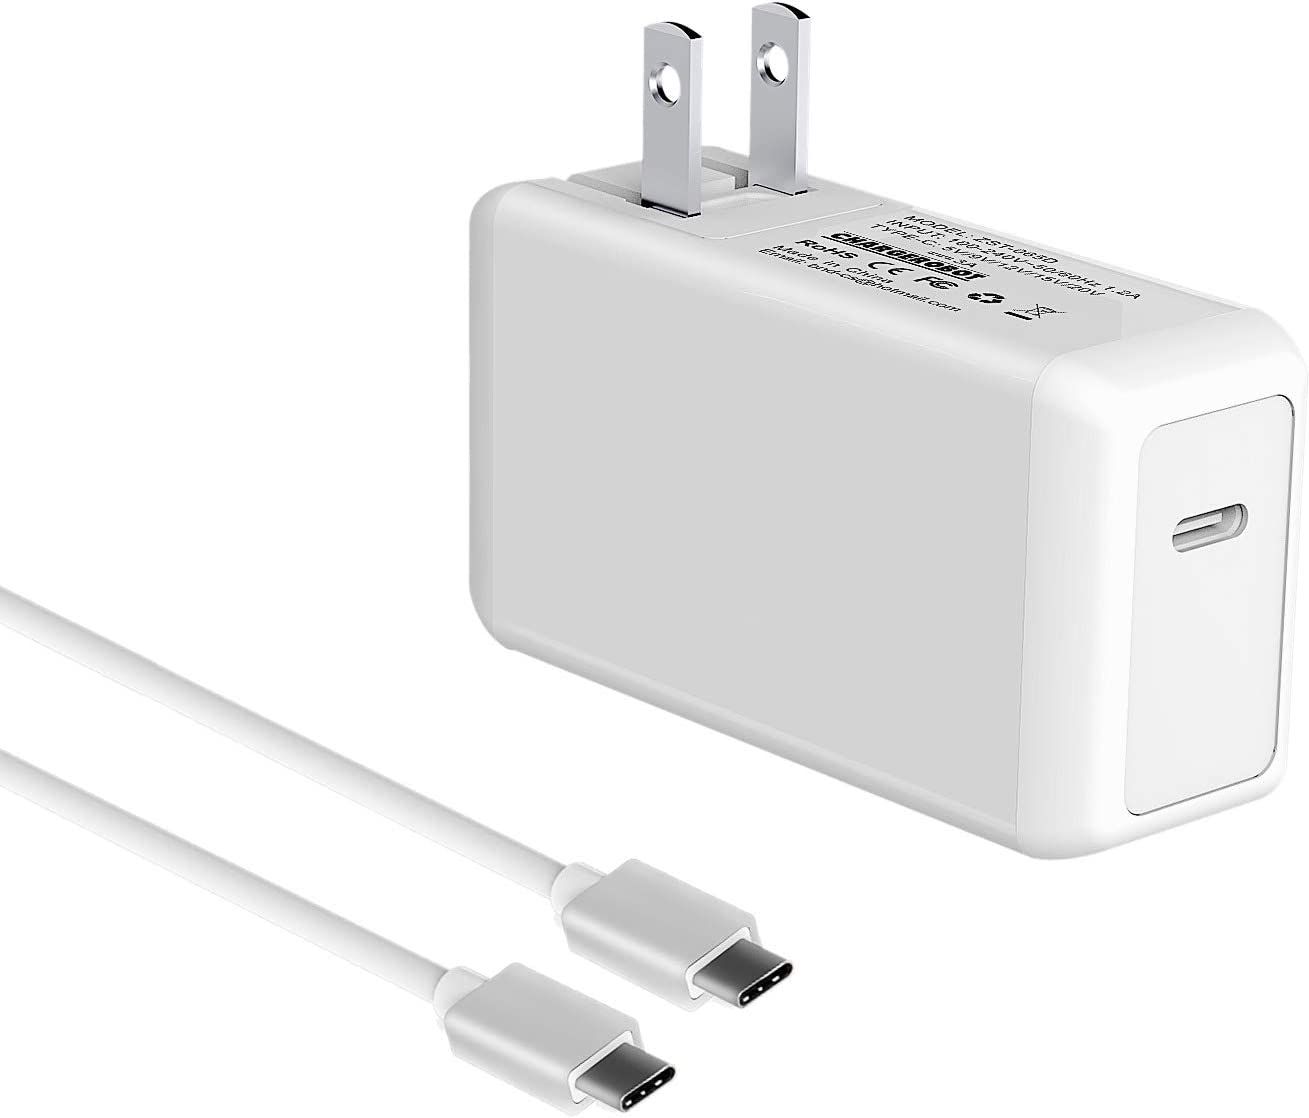 61w USB C Charger for MacBook Pro 13 inch 2016 2017 2018 Type c Wall Charger Power Adapter for Laptop/Phone/ipad pro/chromebook/Note 8/Google Pixel 2XL/lg stylo 4/Huawei Mate Book/Samsung Galaxy s9